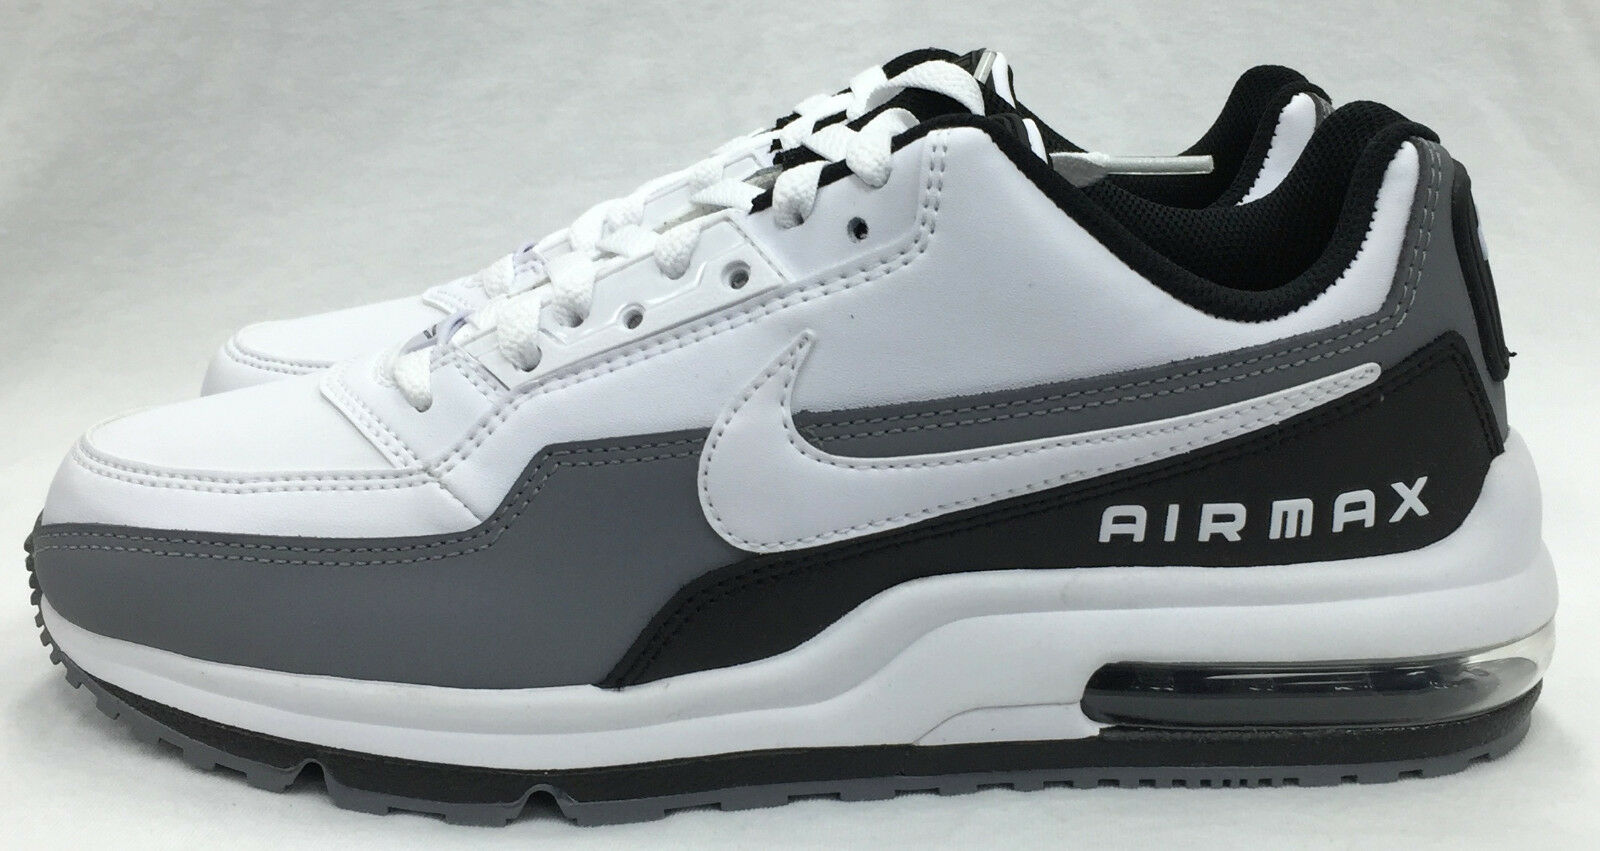 NEW MEN'S NIKE AIR MAX LTD 3 687977-119 WHITE WHITE-BLACK-COOL GREY